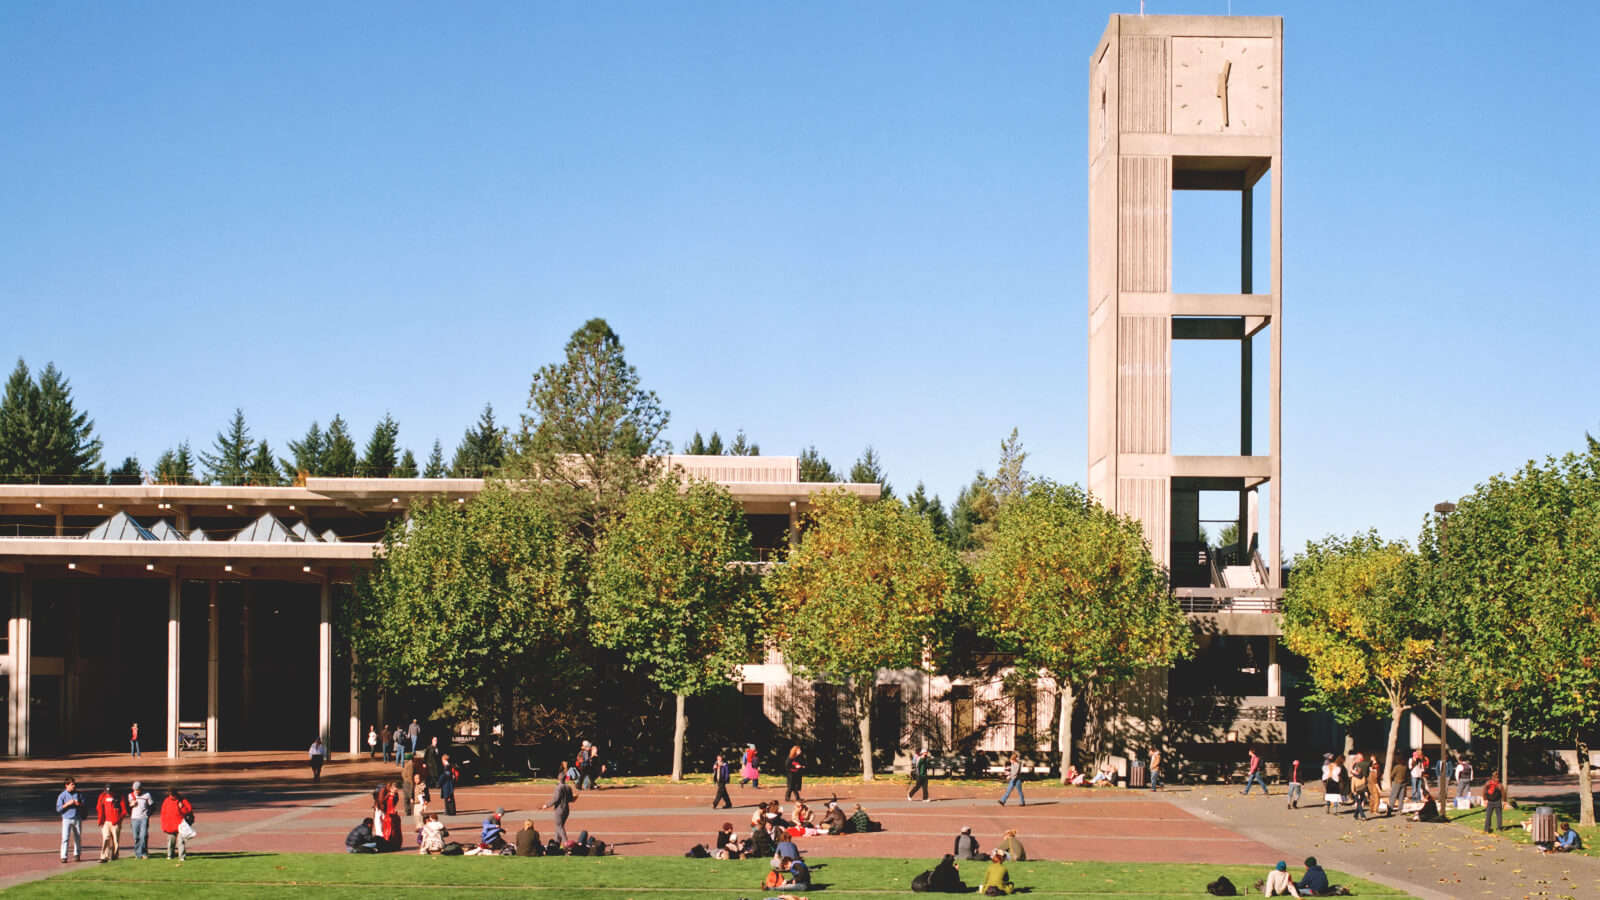 A view of the campus at Evergreen State College.